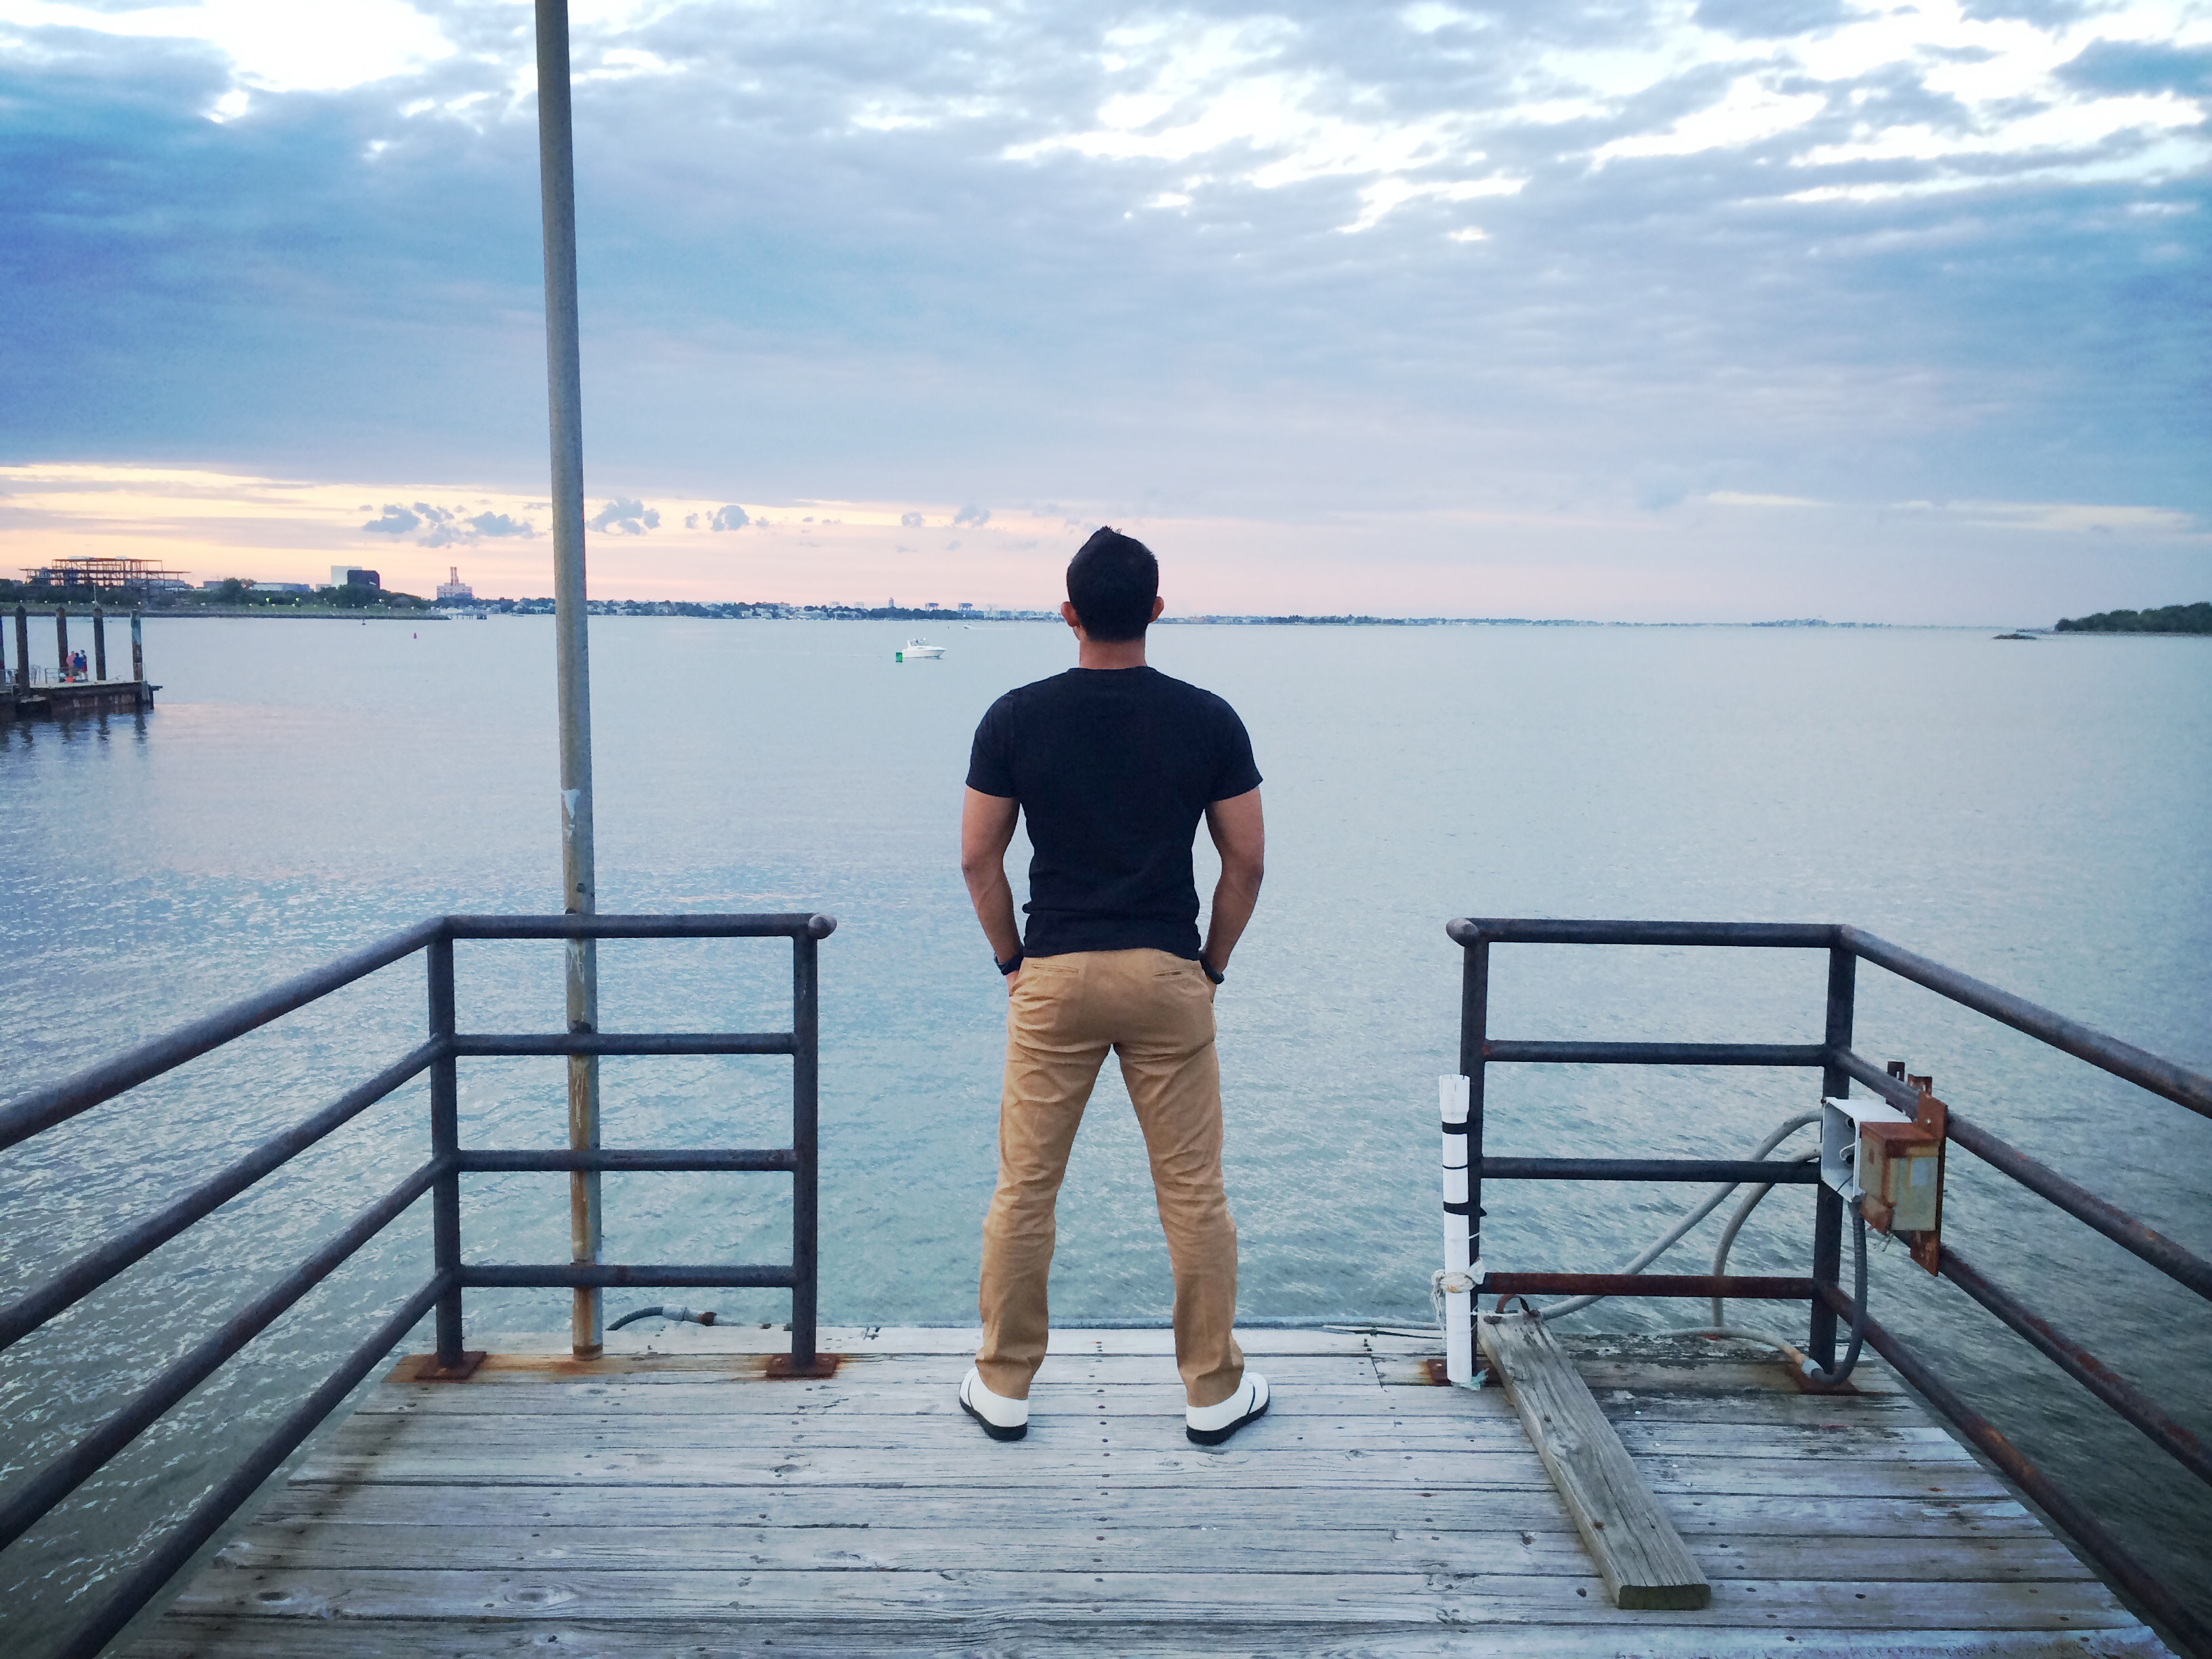 Contemplating the Philosophy of Everyday Life at Boston Harbor shore